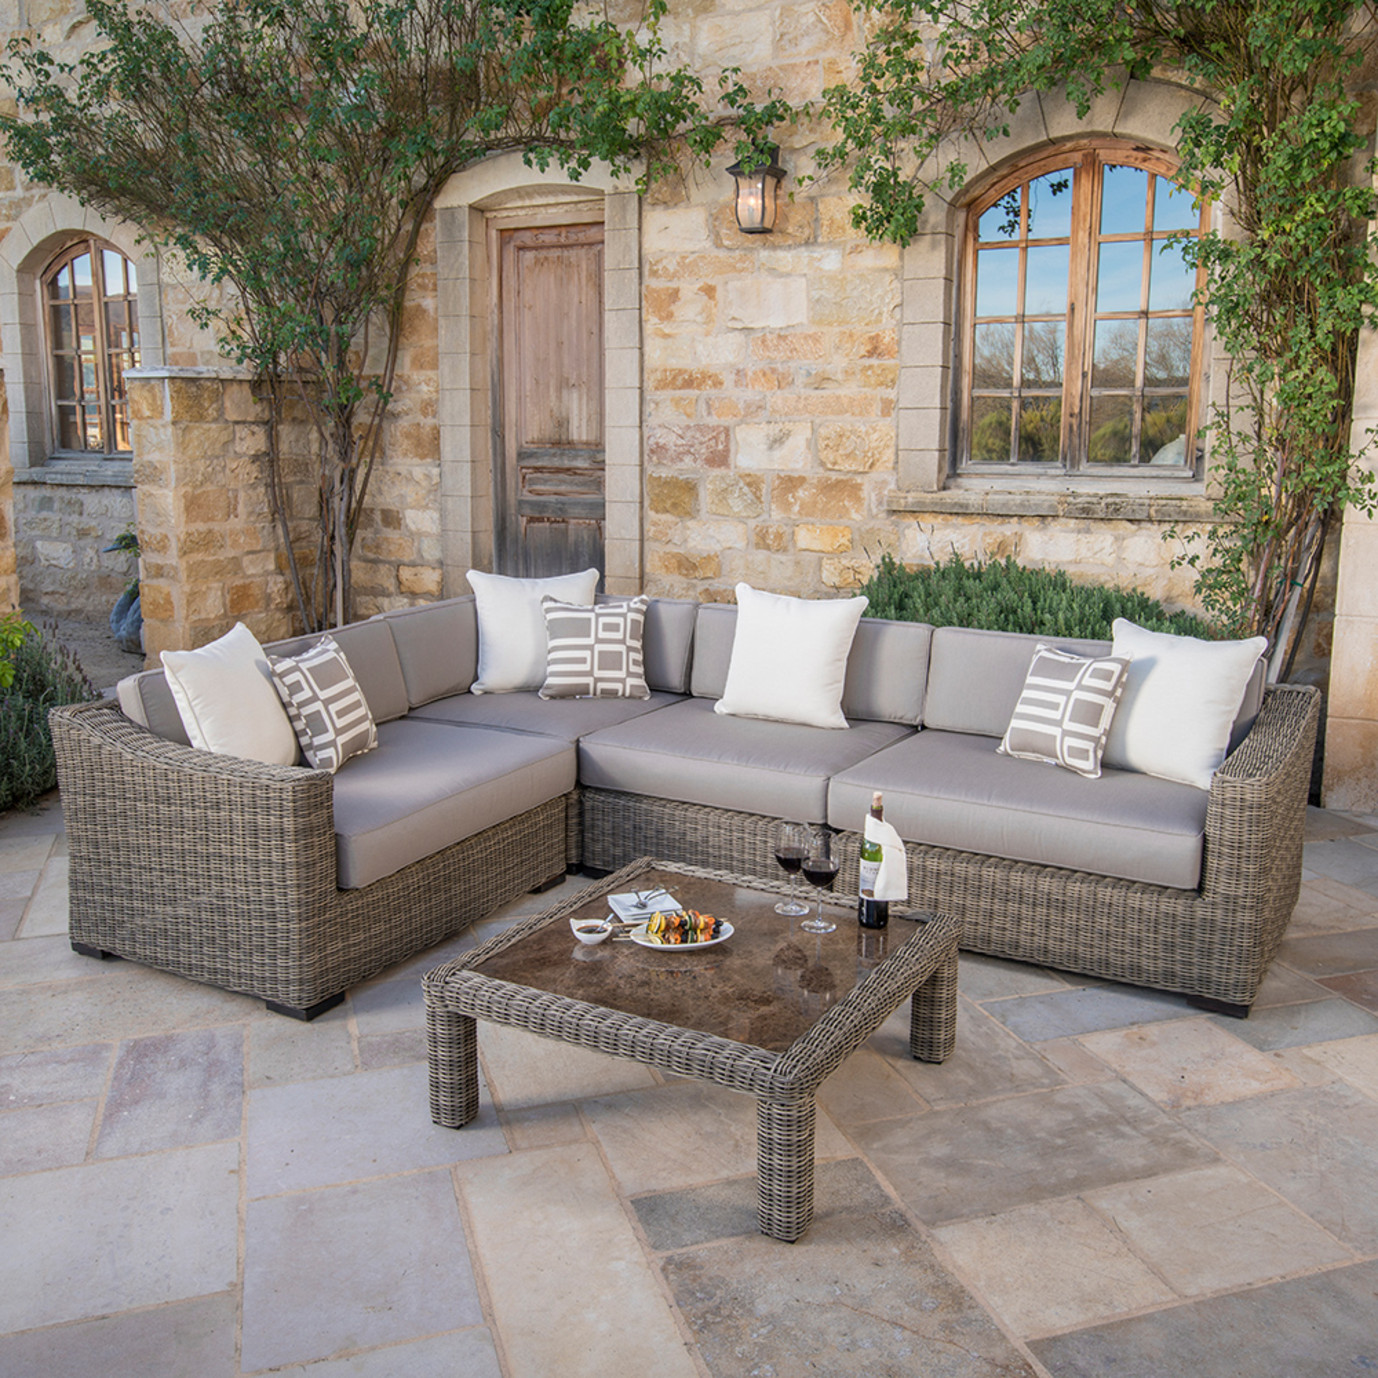 Resort™ Deluxe 5 Piece Seating Set - Weathered Grey